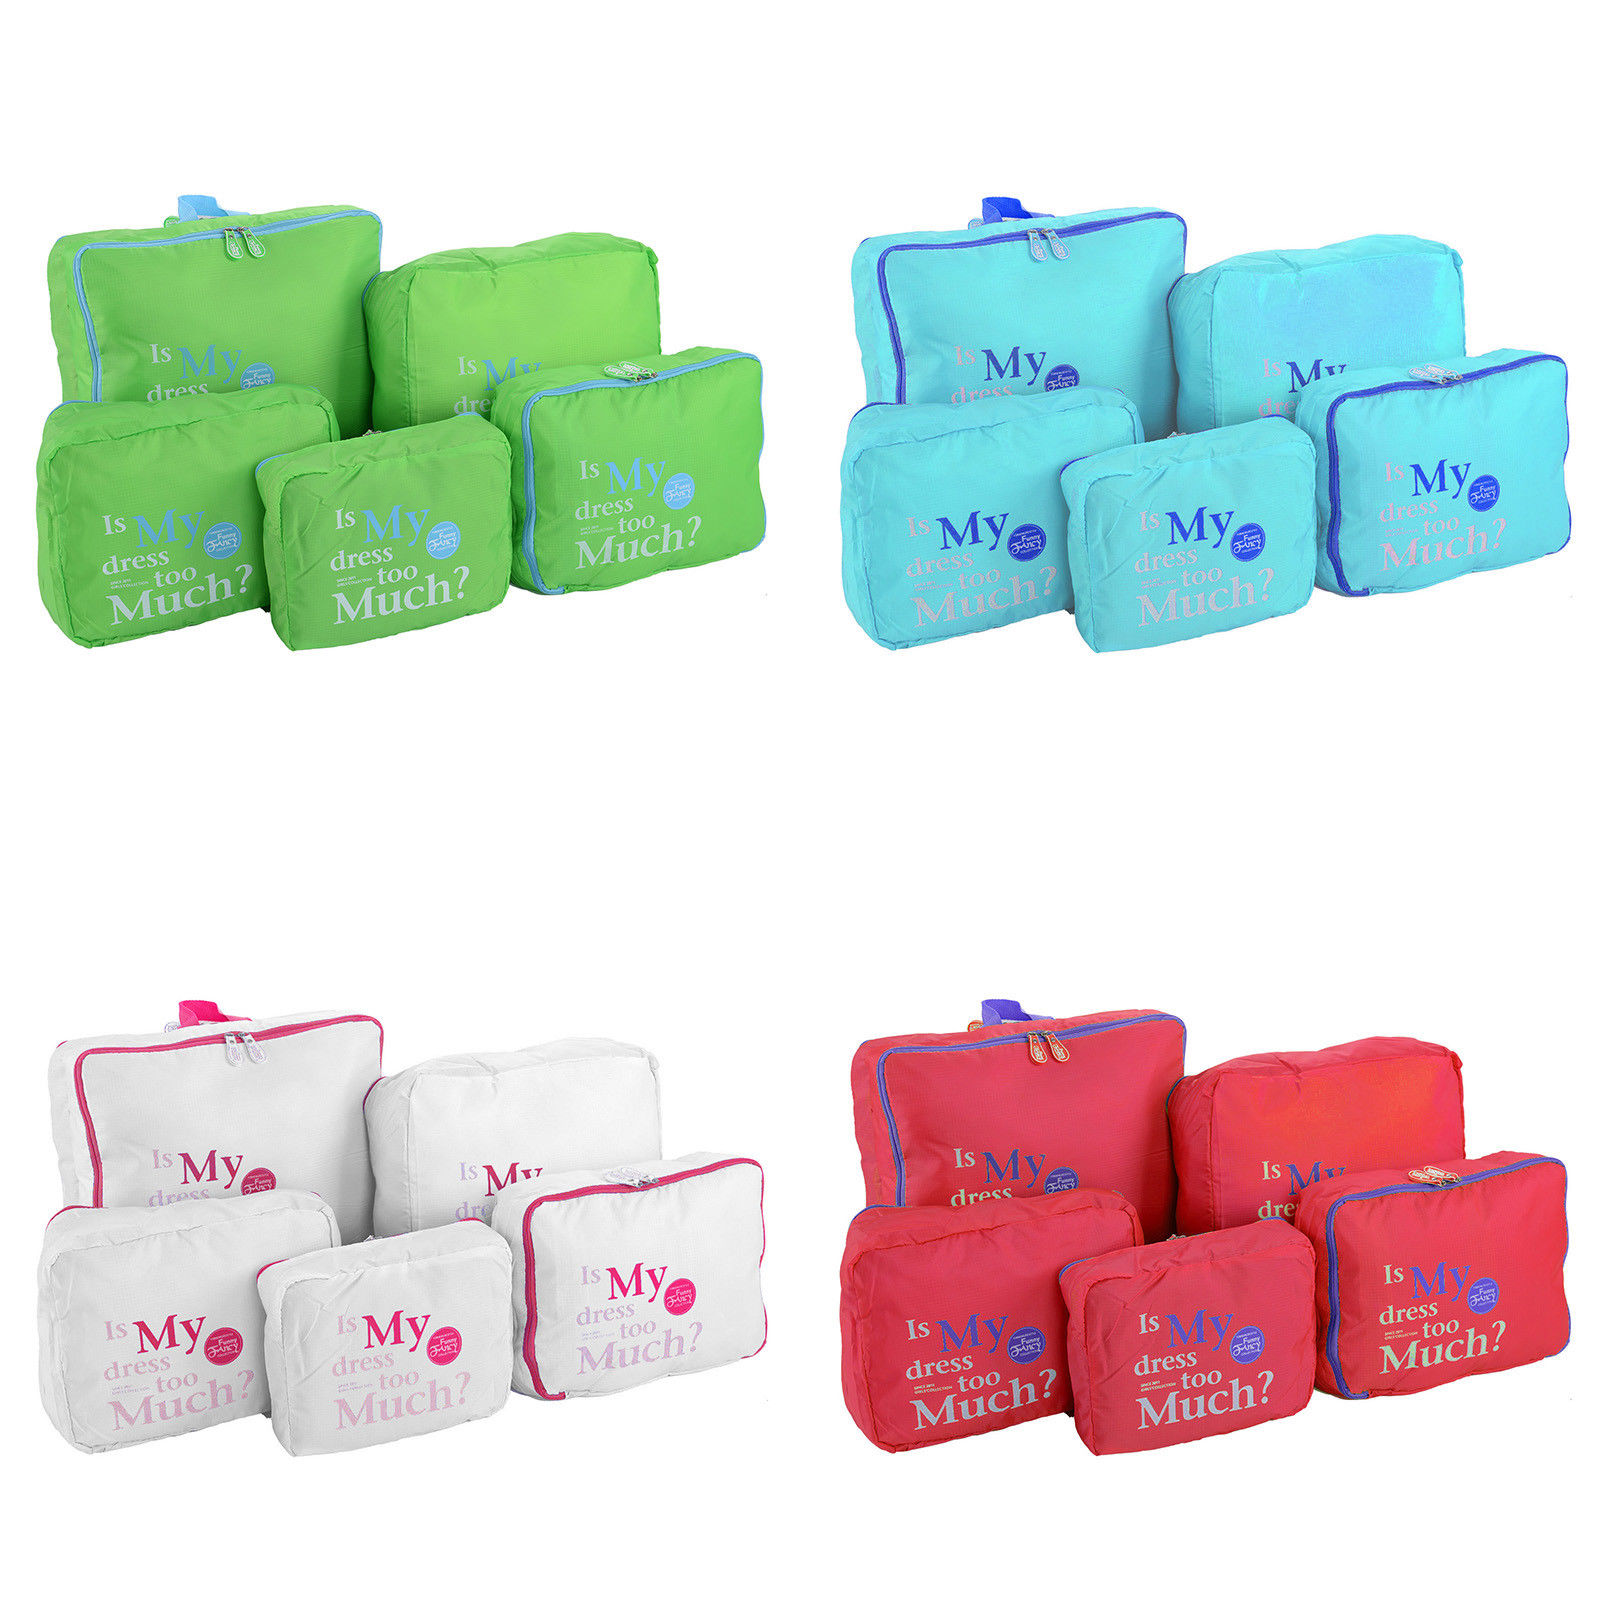 5Pcs Set Waterproof Travel Clothes Storage Bags Luggage Organizer Pouch Packing Storage Bags